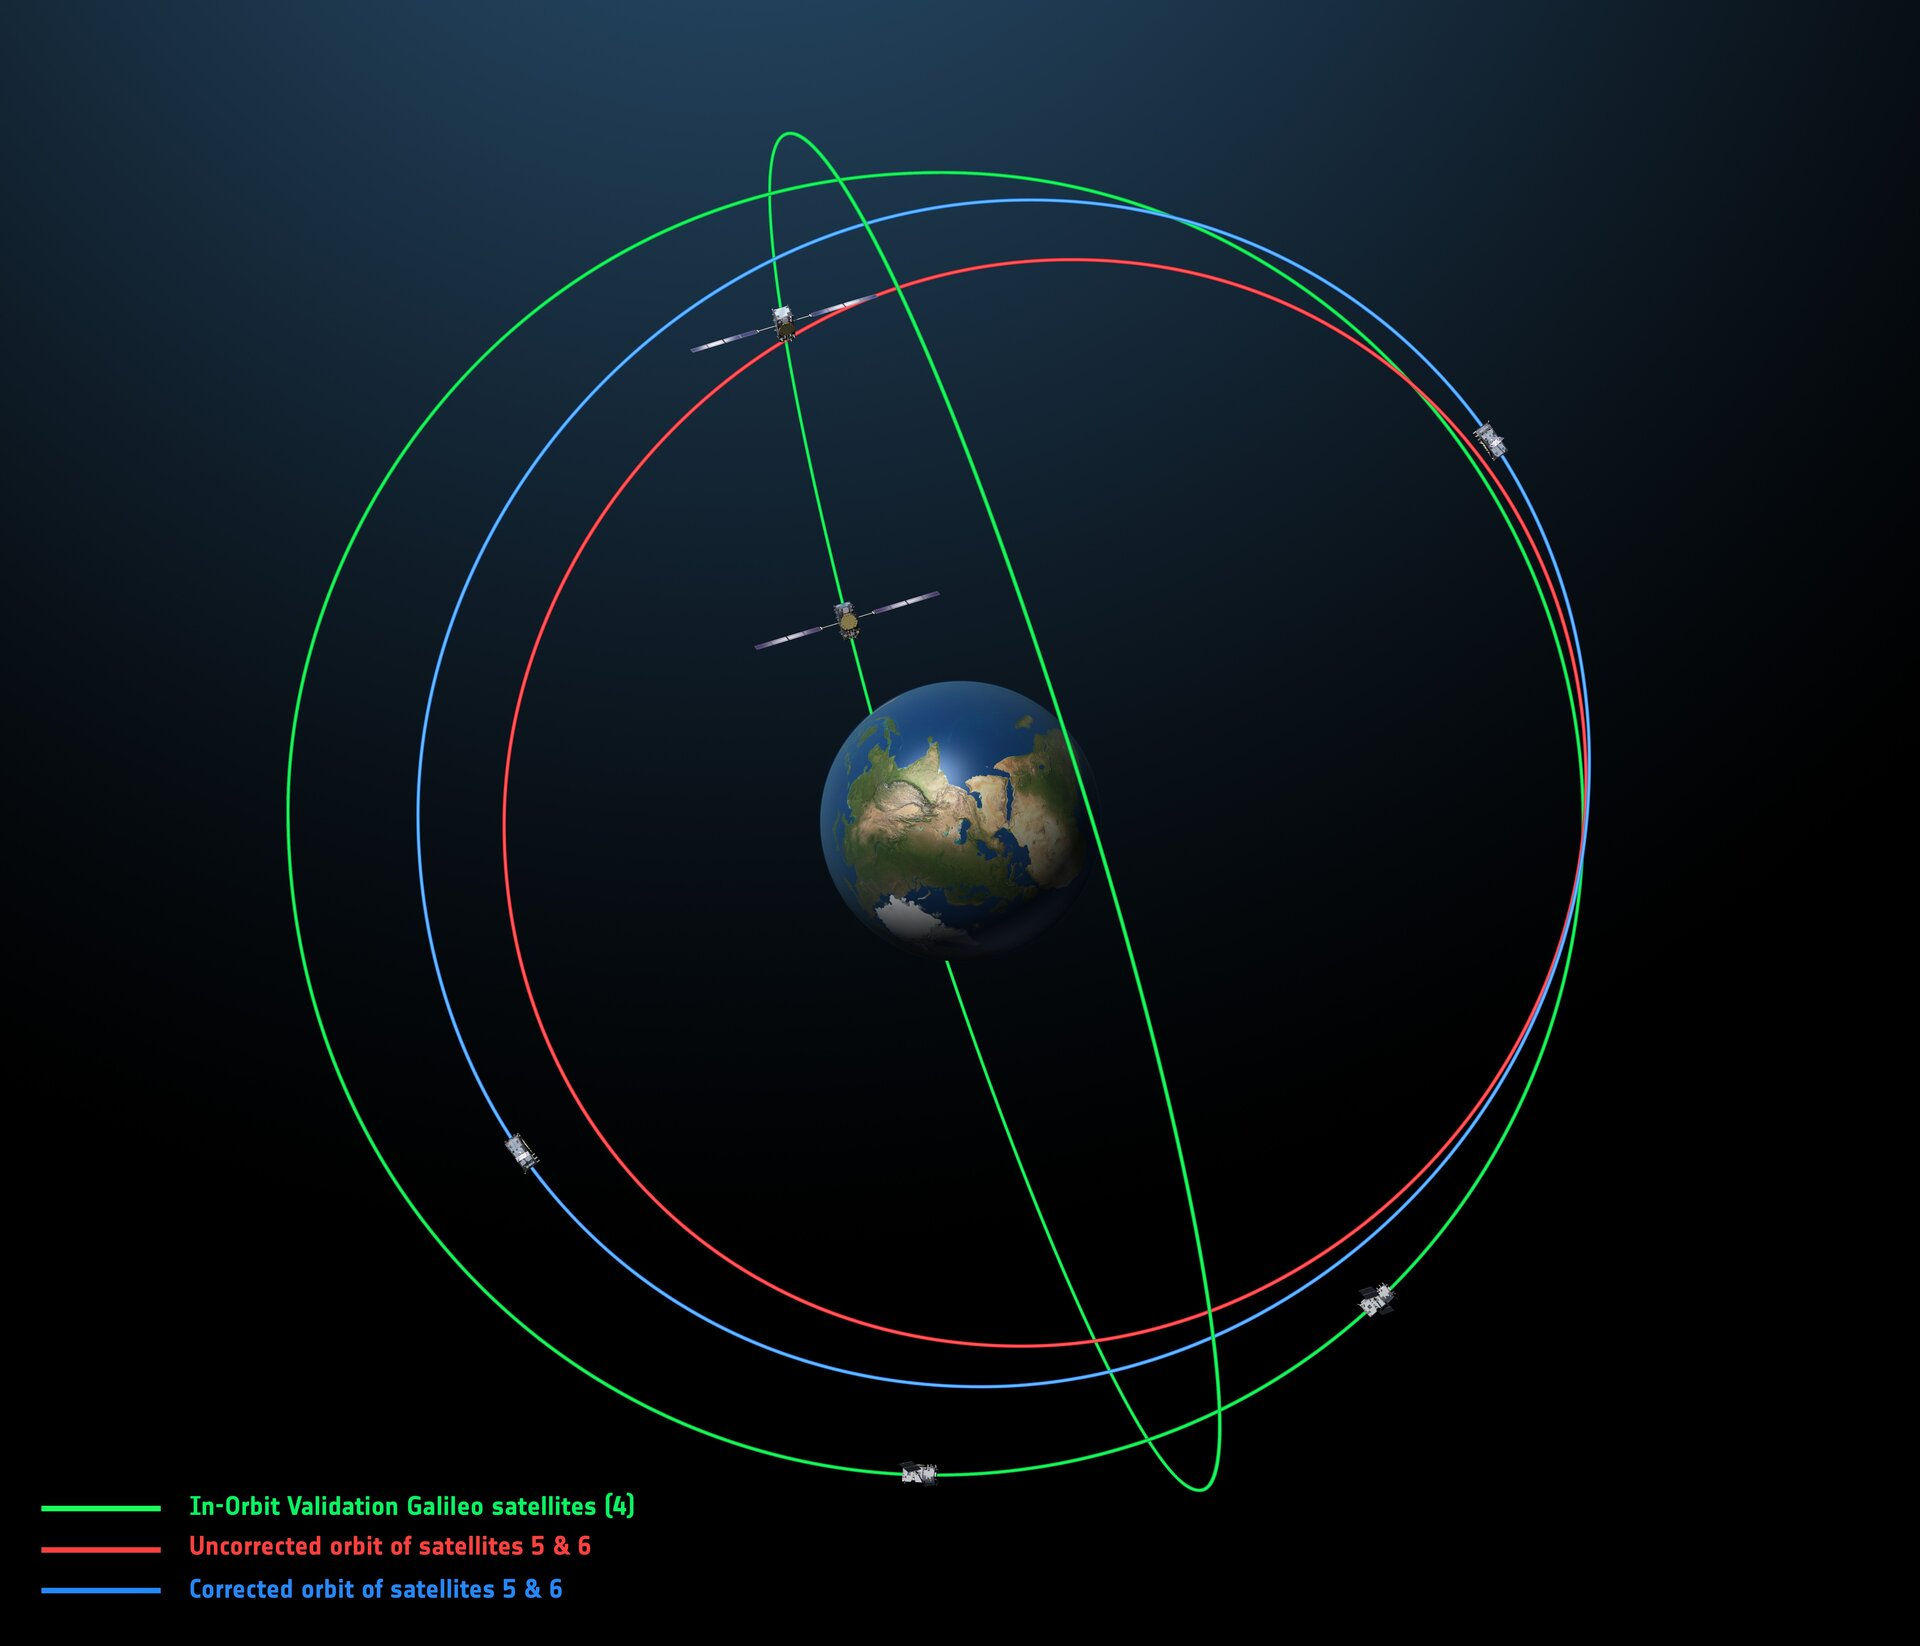 Corrected orbits